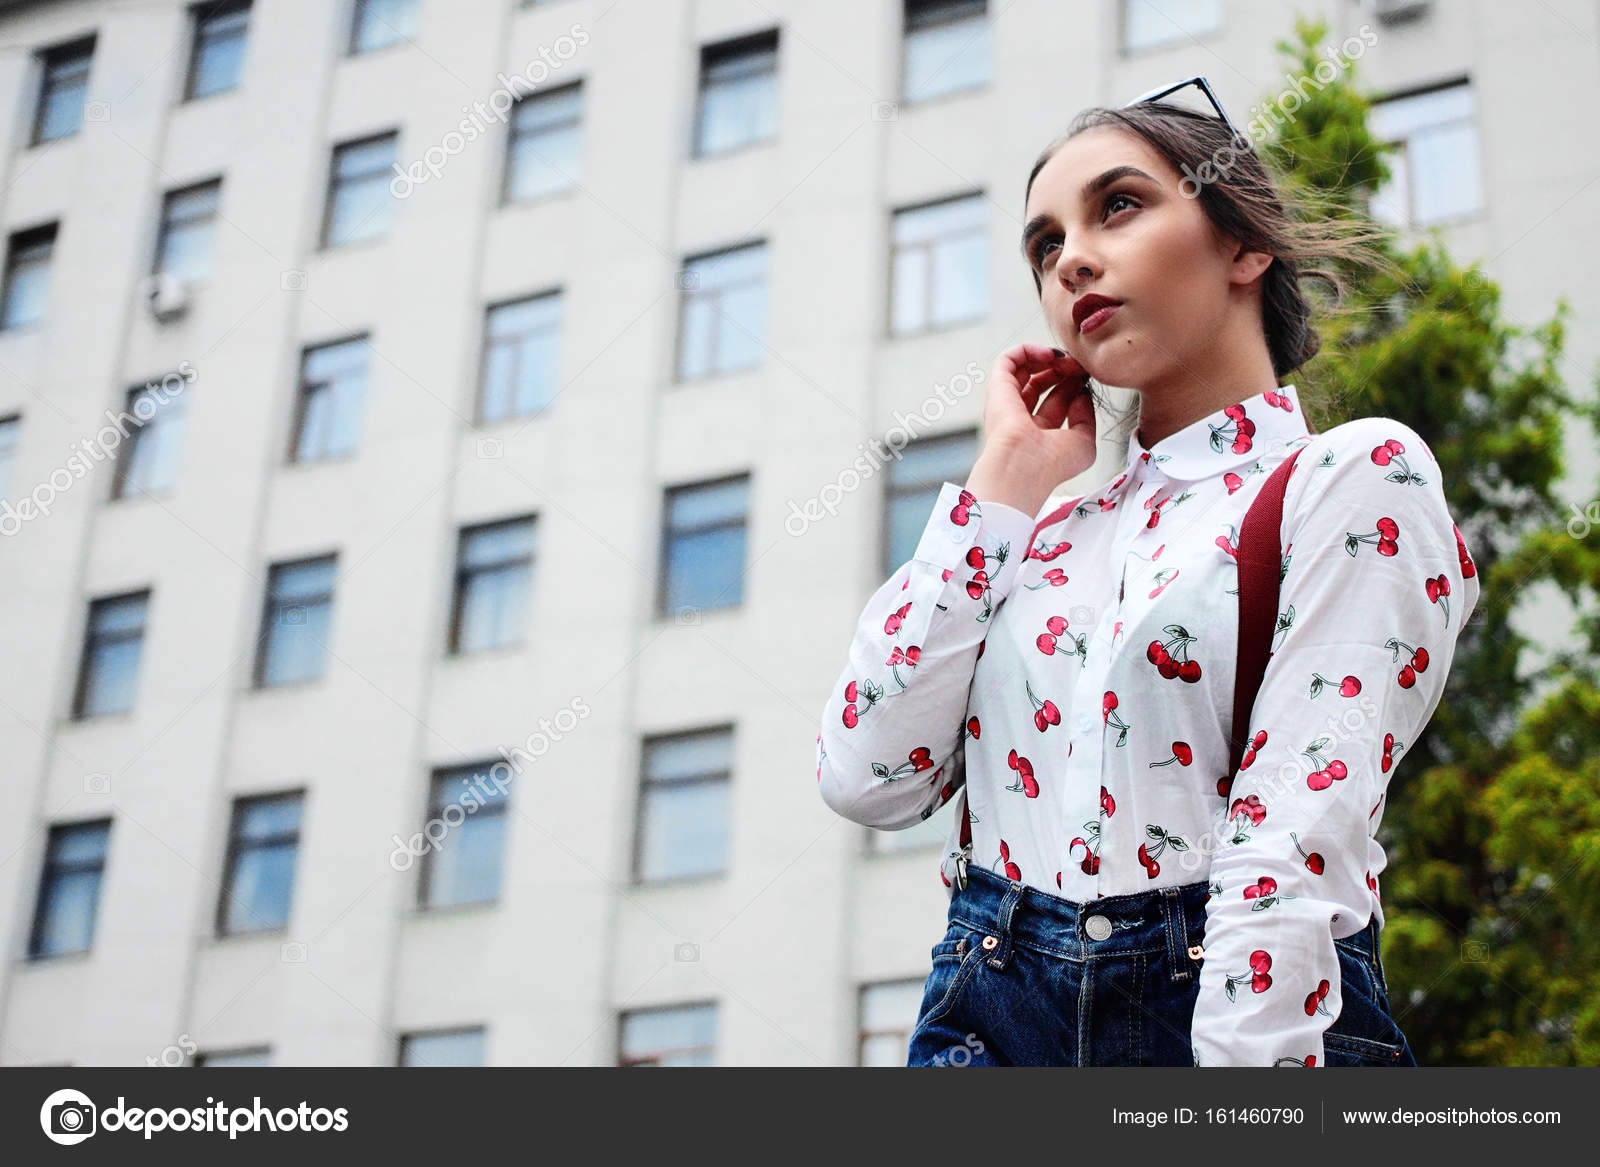 Closeup Fashion Portrait Of Young Pretty Hipster Girl With